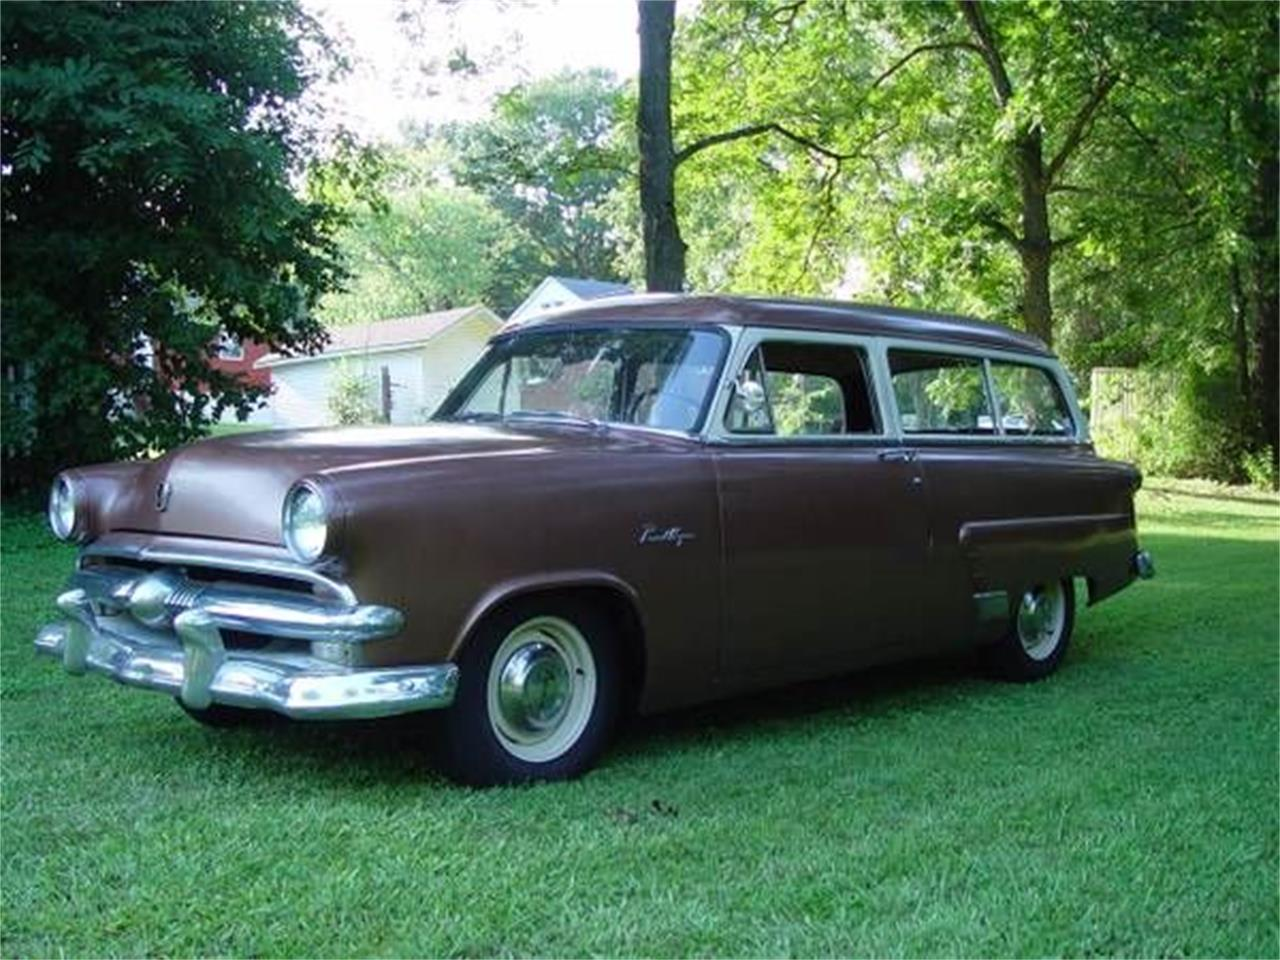 1953 Ford Ranch Wagon for sale in Cadillac, MI